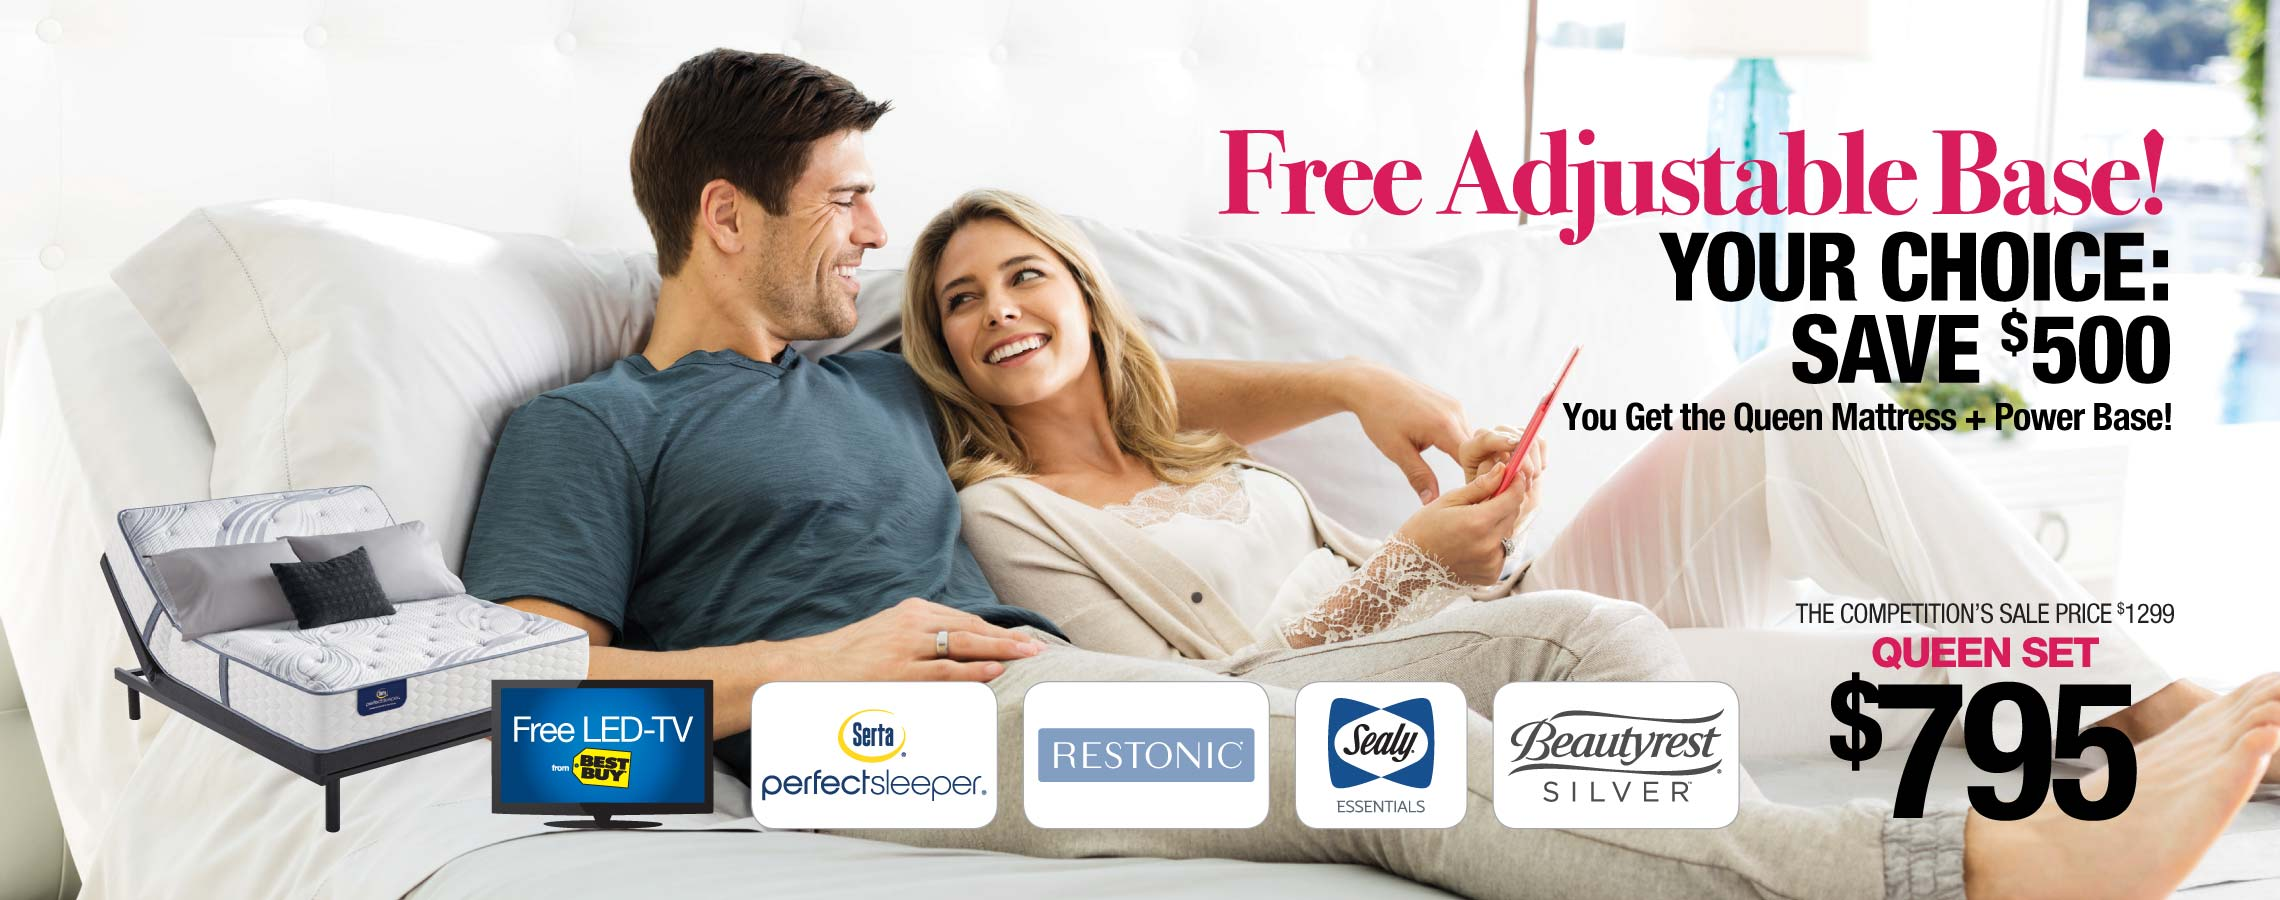 Free Adjustable Base! Your Choice of Brand Name Mattresses $795